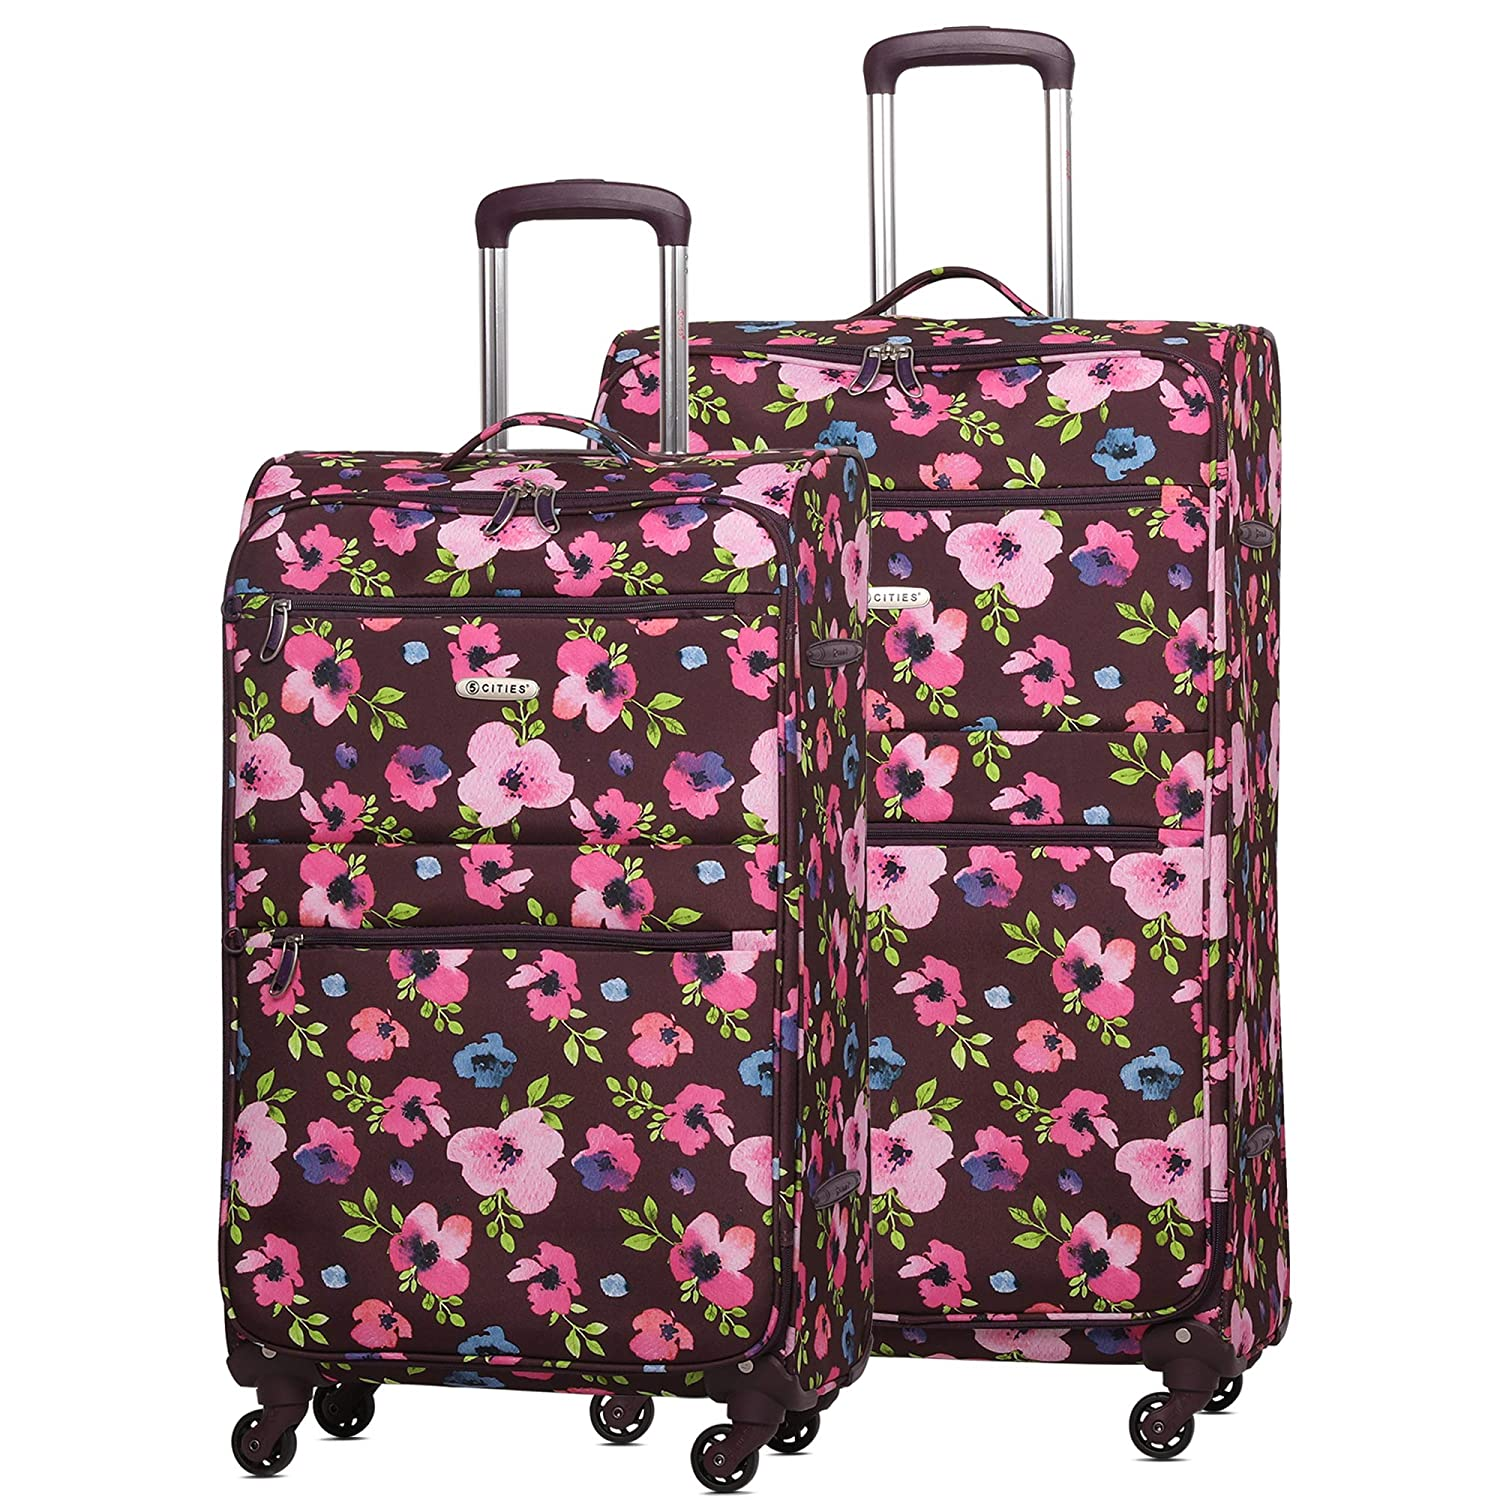 "5 Cities Ultra Lightweight 4 Wheel 2 Piece Luggage Suitcase Set, 21"" Hand Cabin Luggage + Medium 26"" Hold Check in Luggage(Navy Floral)"